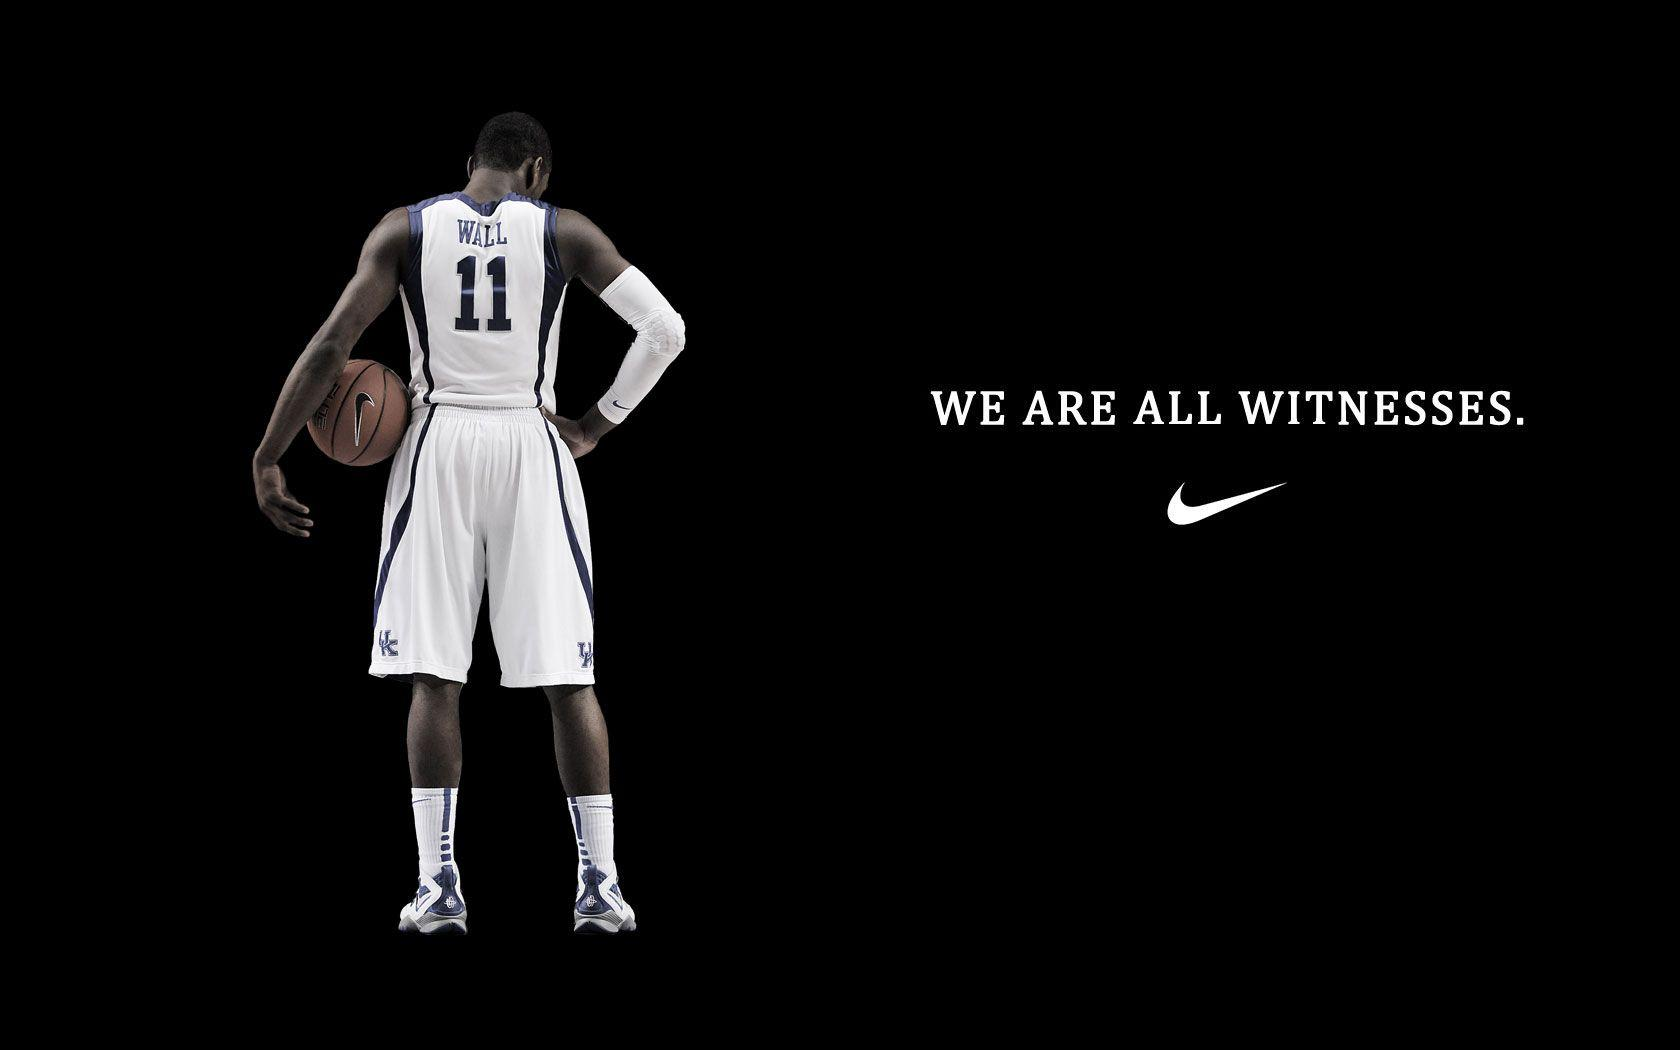 Nike Basketball Wallpapers 2016 Wallpaper Cave